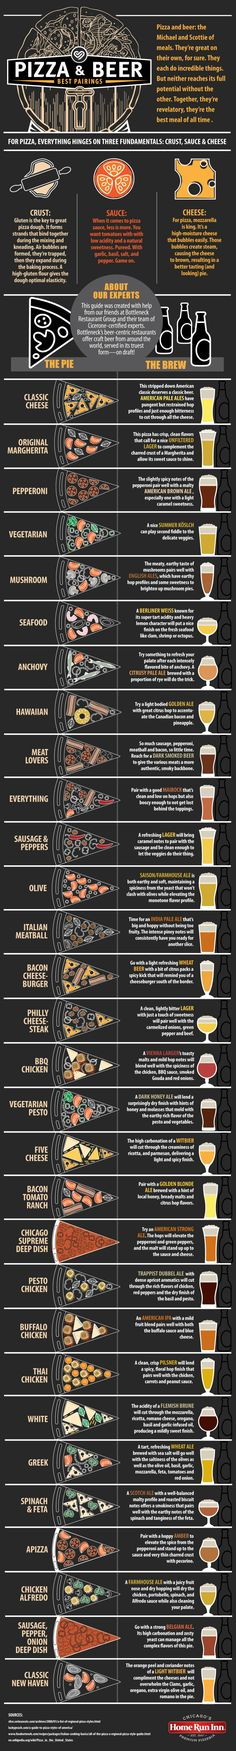 Beer + Pizza Pairings Guide (Infographic) -